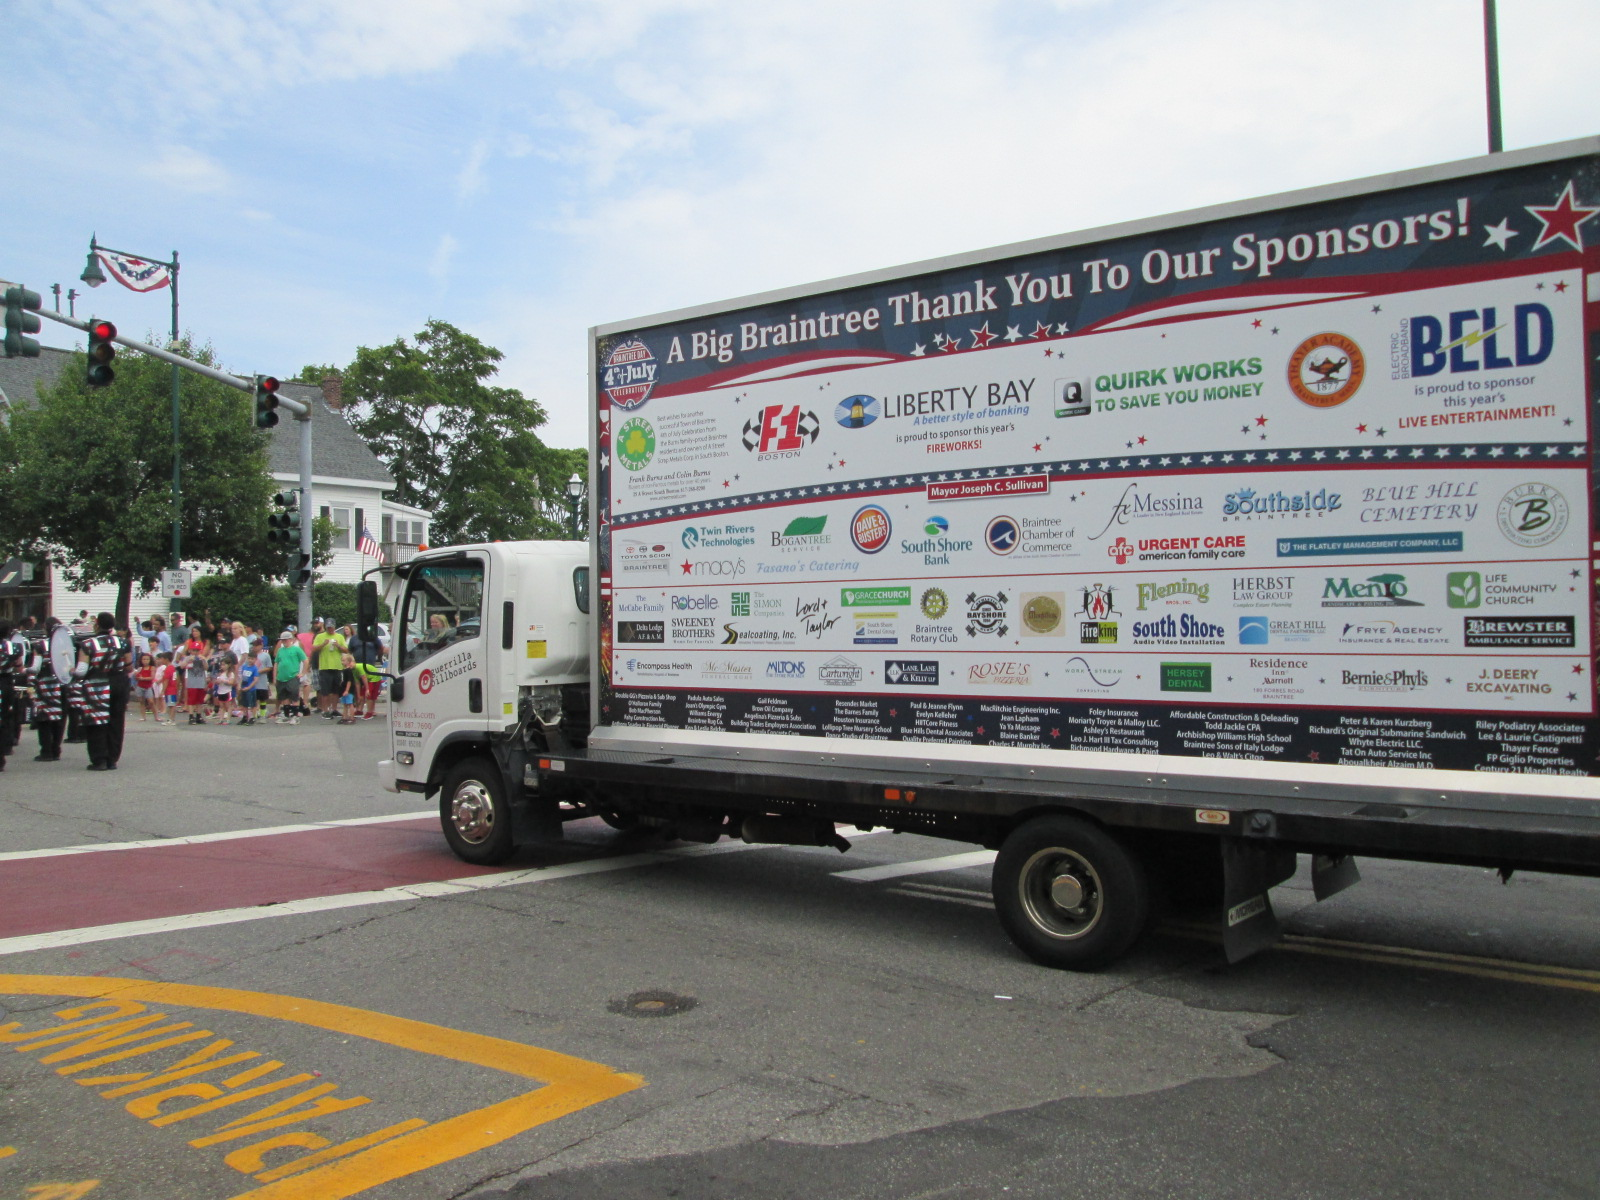 Billboard truck running in a parade with a Thank You Sponsors ad